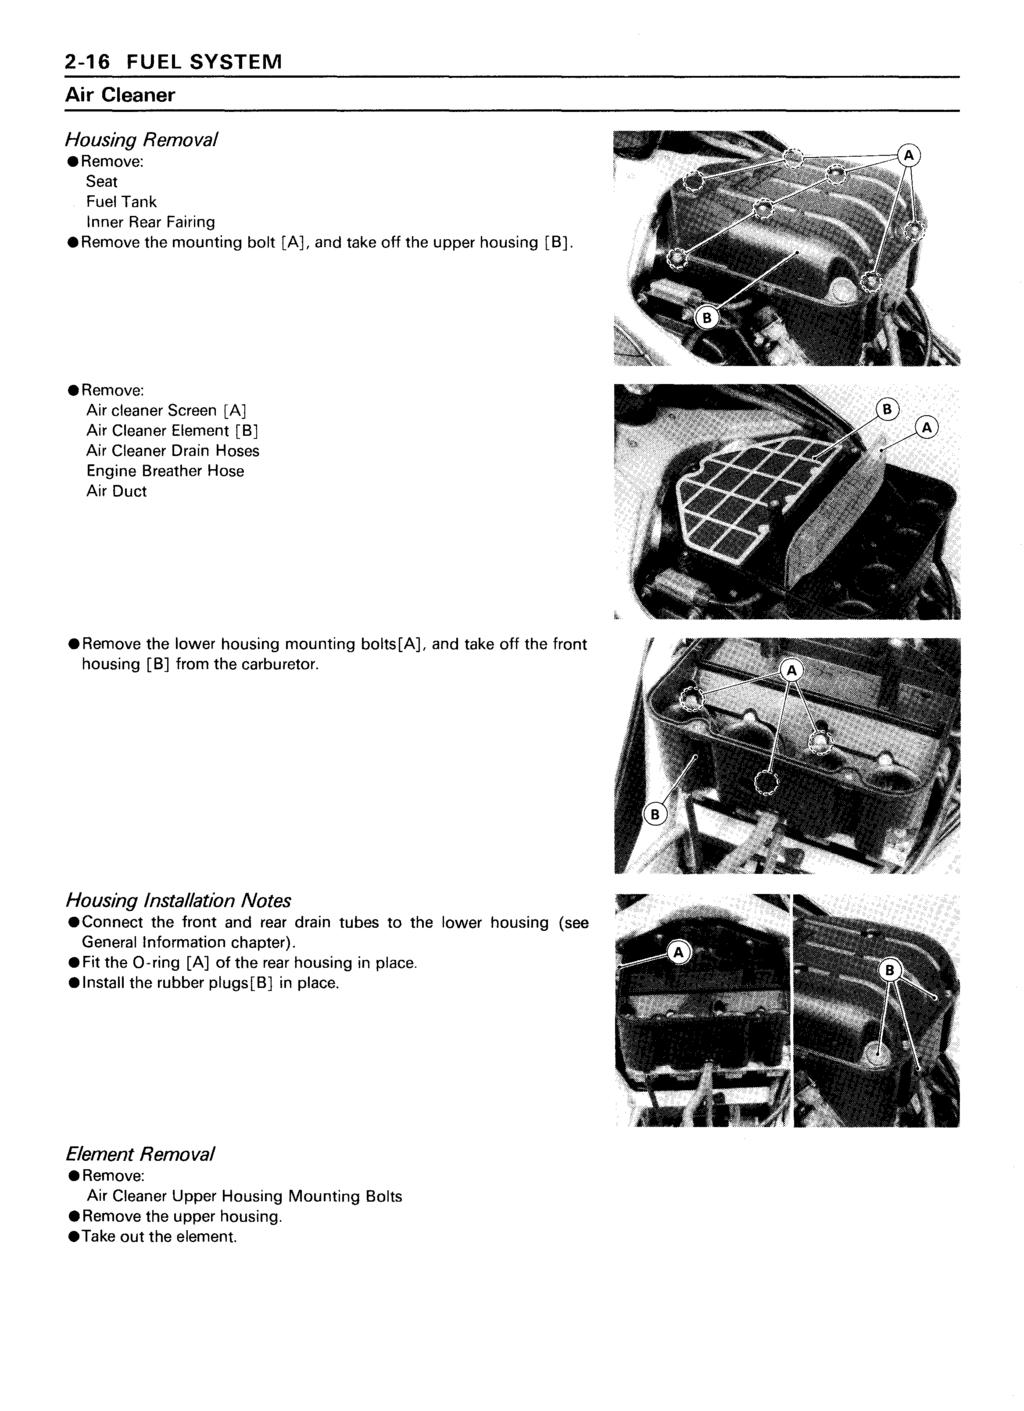 Ninja Zx 11 Zz R1100 Kawasaki Motorcycle Service Manual Pdf Air Cleaner Fuel Tank And Carburetor Assembly 2 16 System Housing Removal Remove Seat Inner Rear